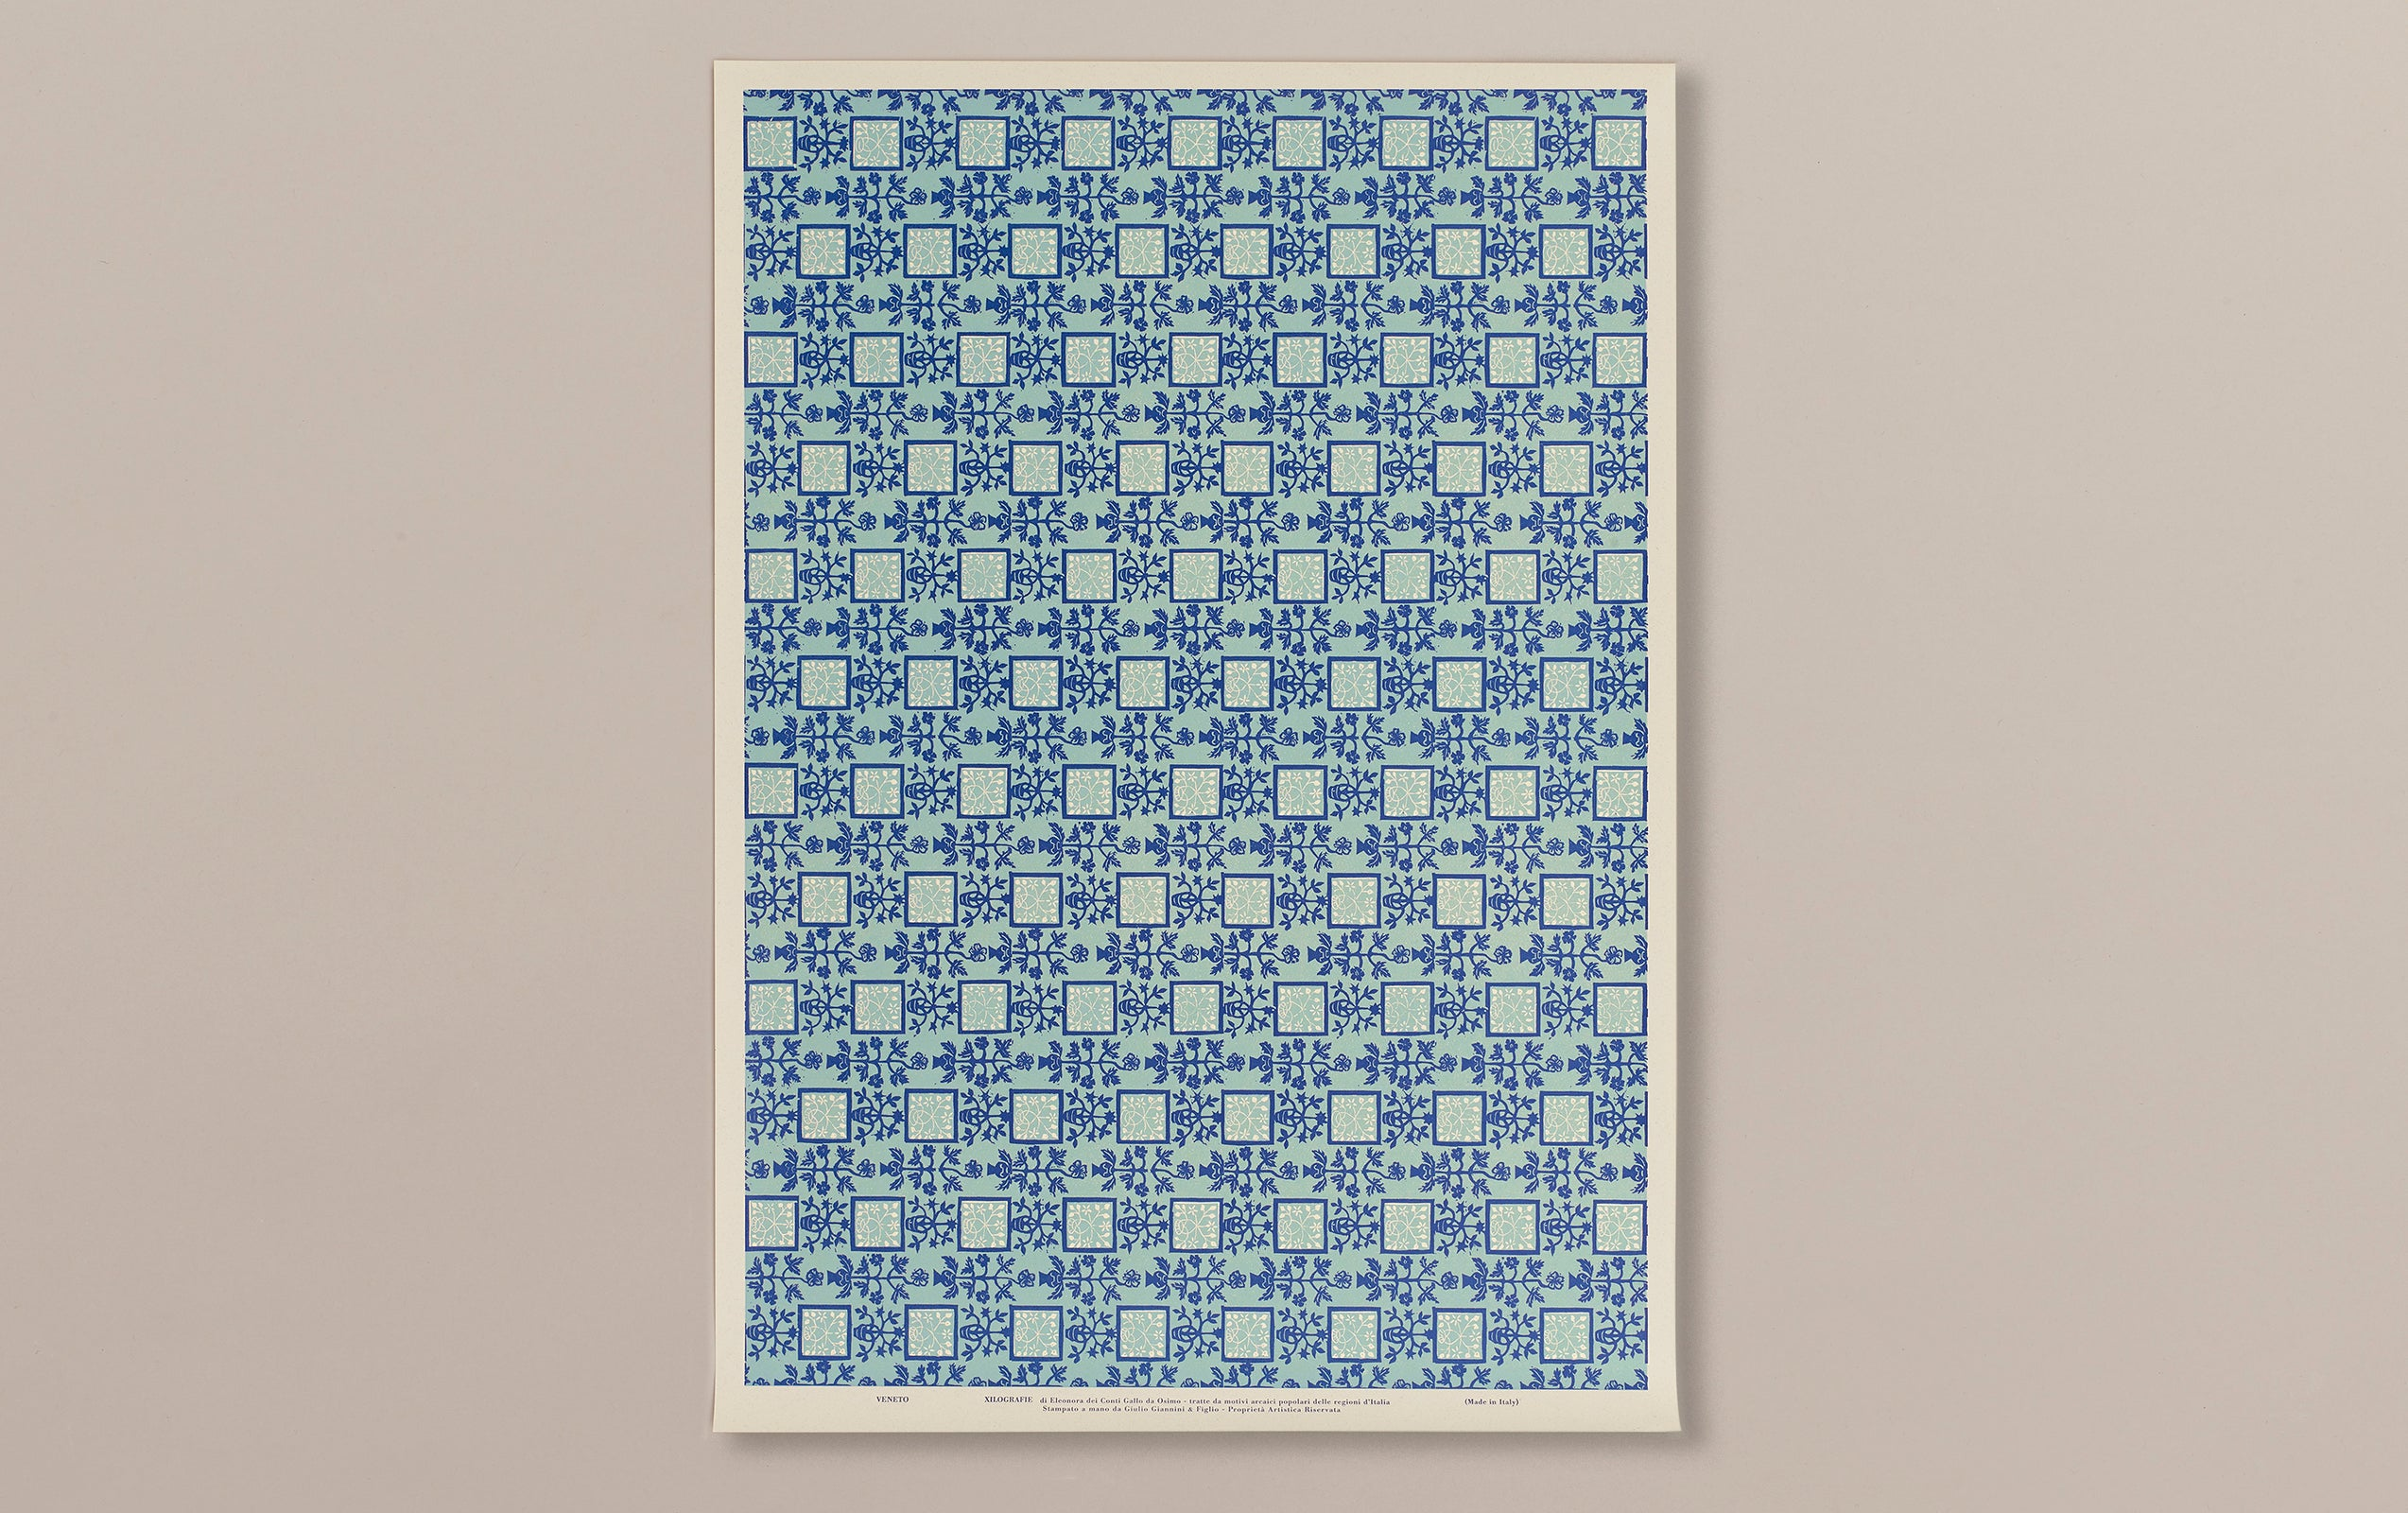 Italian Woodblock Paper Sheet, Venice in Blue